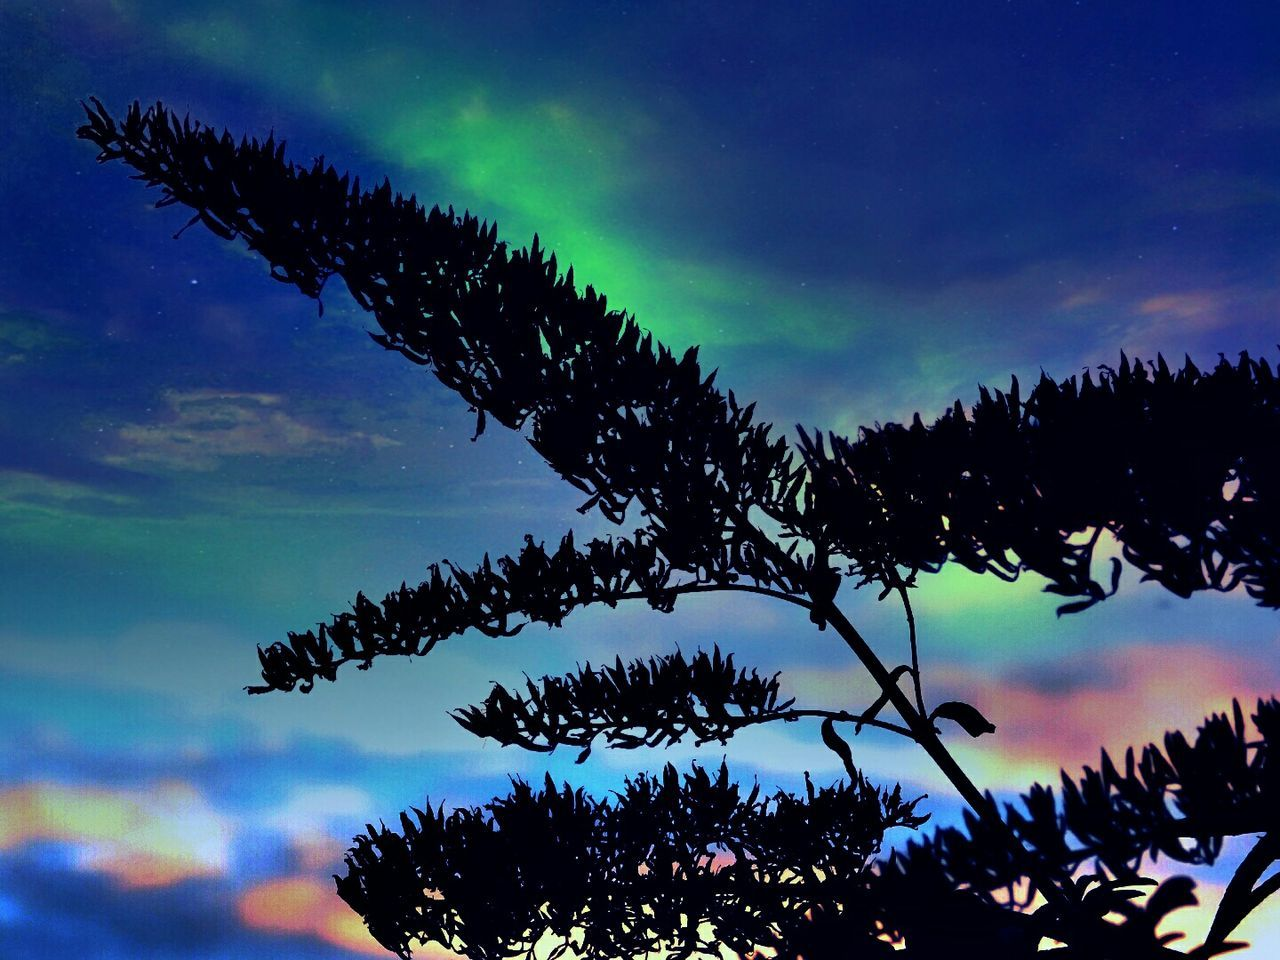 Low Angle View Of Silhouette Tree Against Aurora